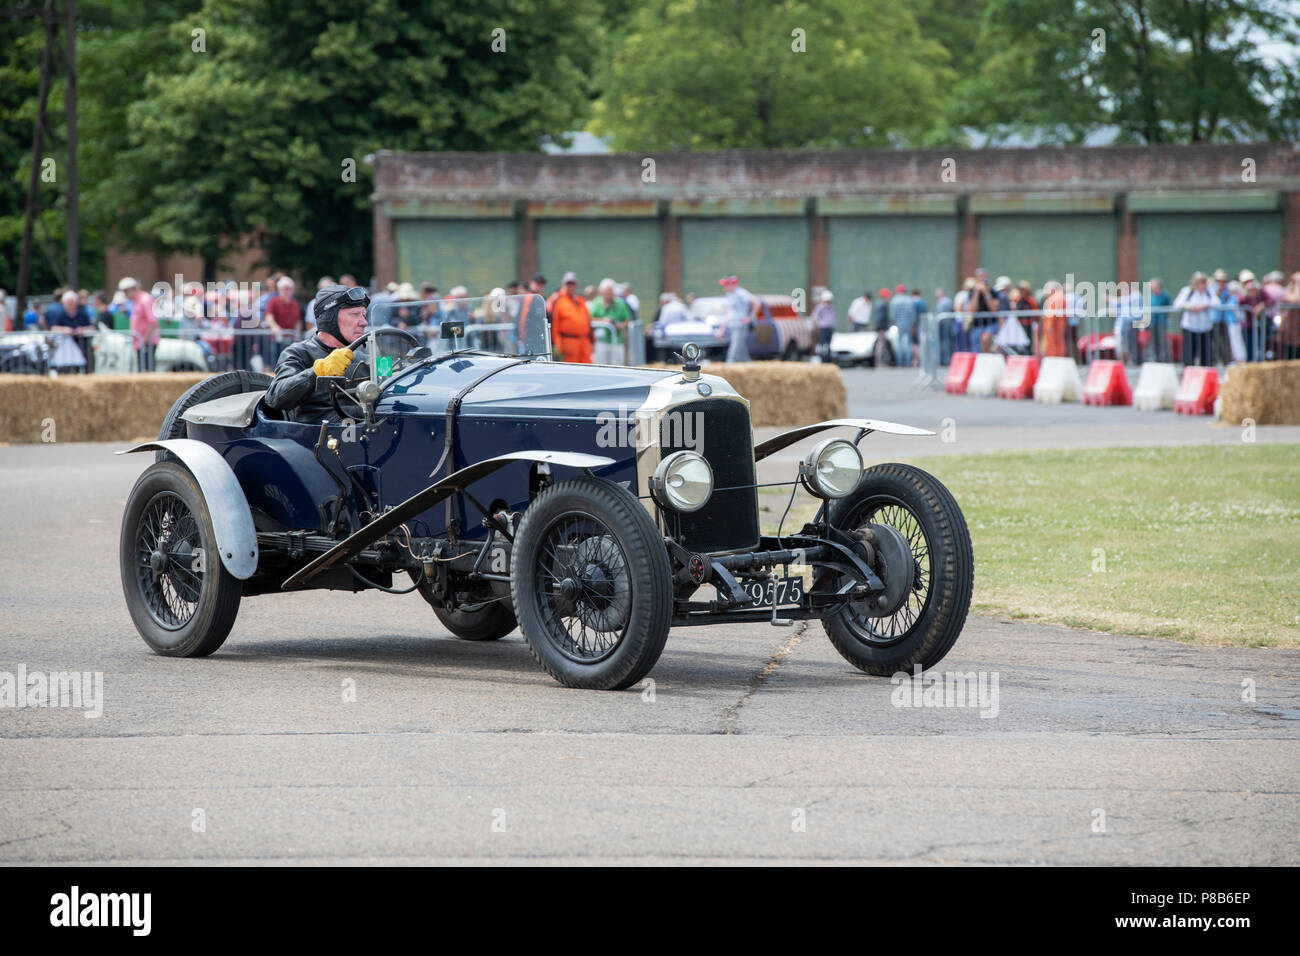 1926 Vintage Vauxhall racing car driven around a track at the Bicester flywheel festival, Bicester Heritage centre, Oxfordshire, England - Stock Image